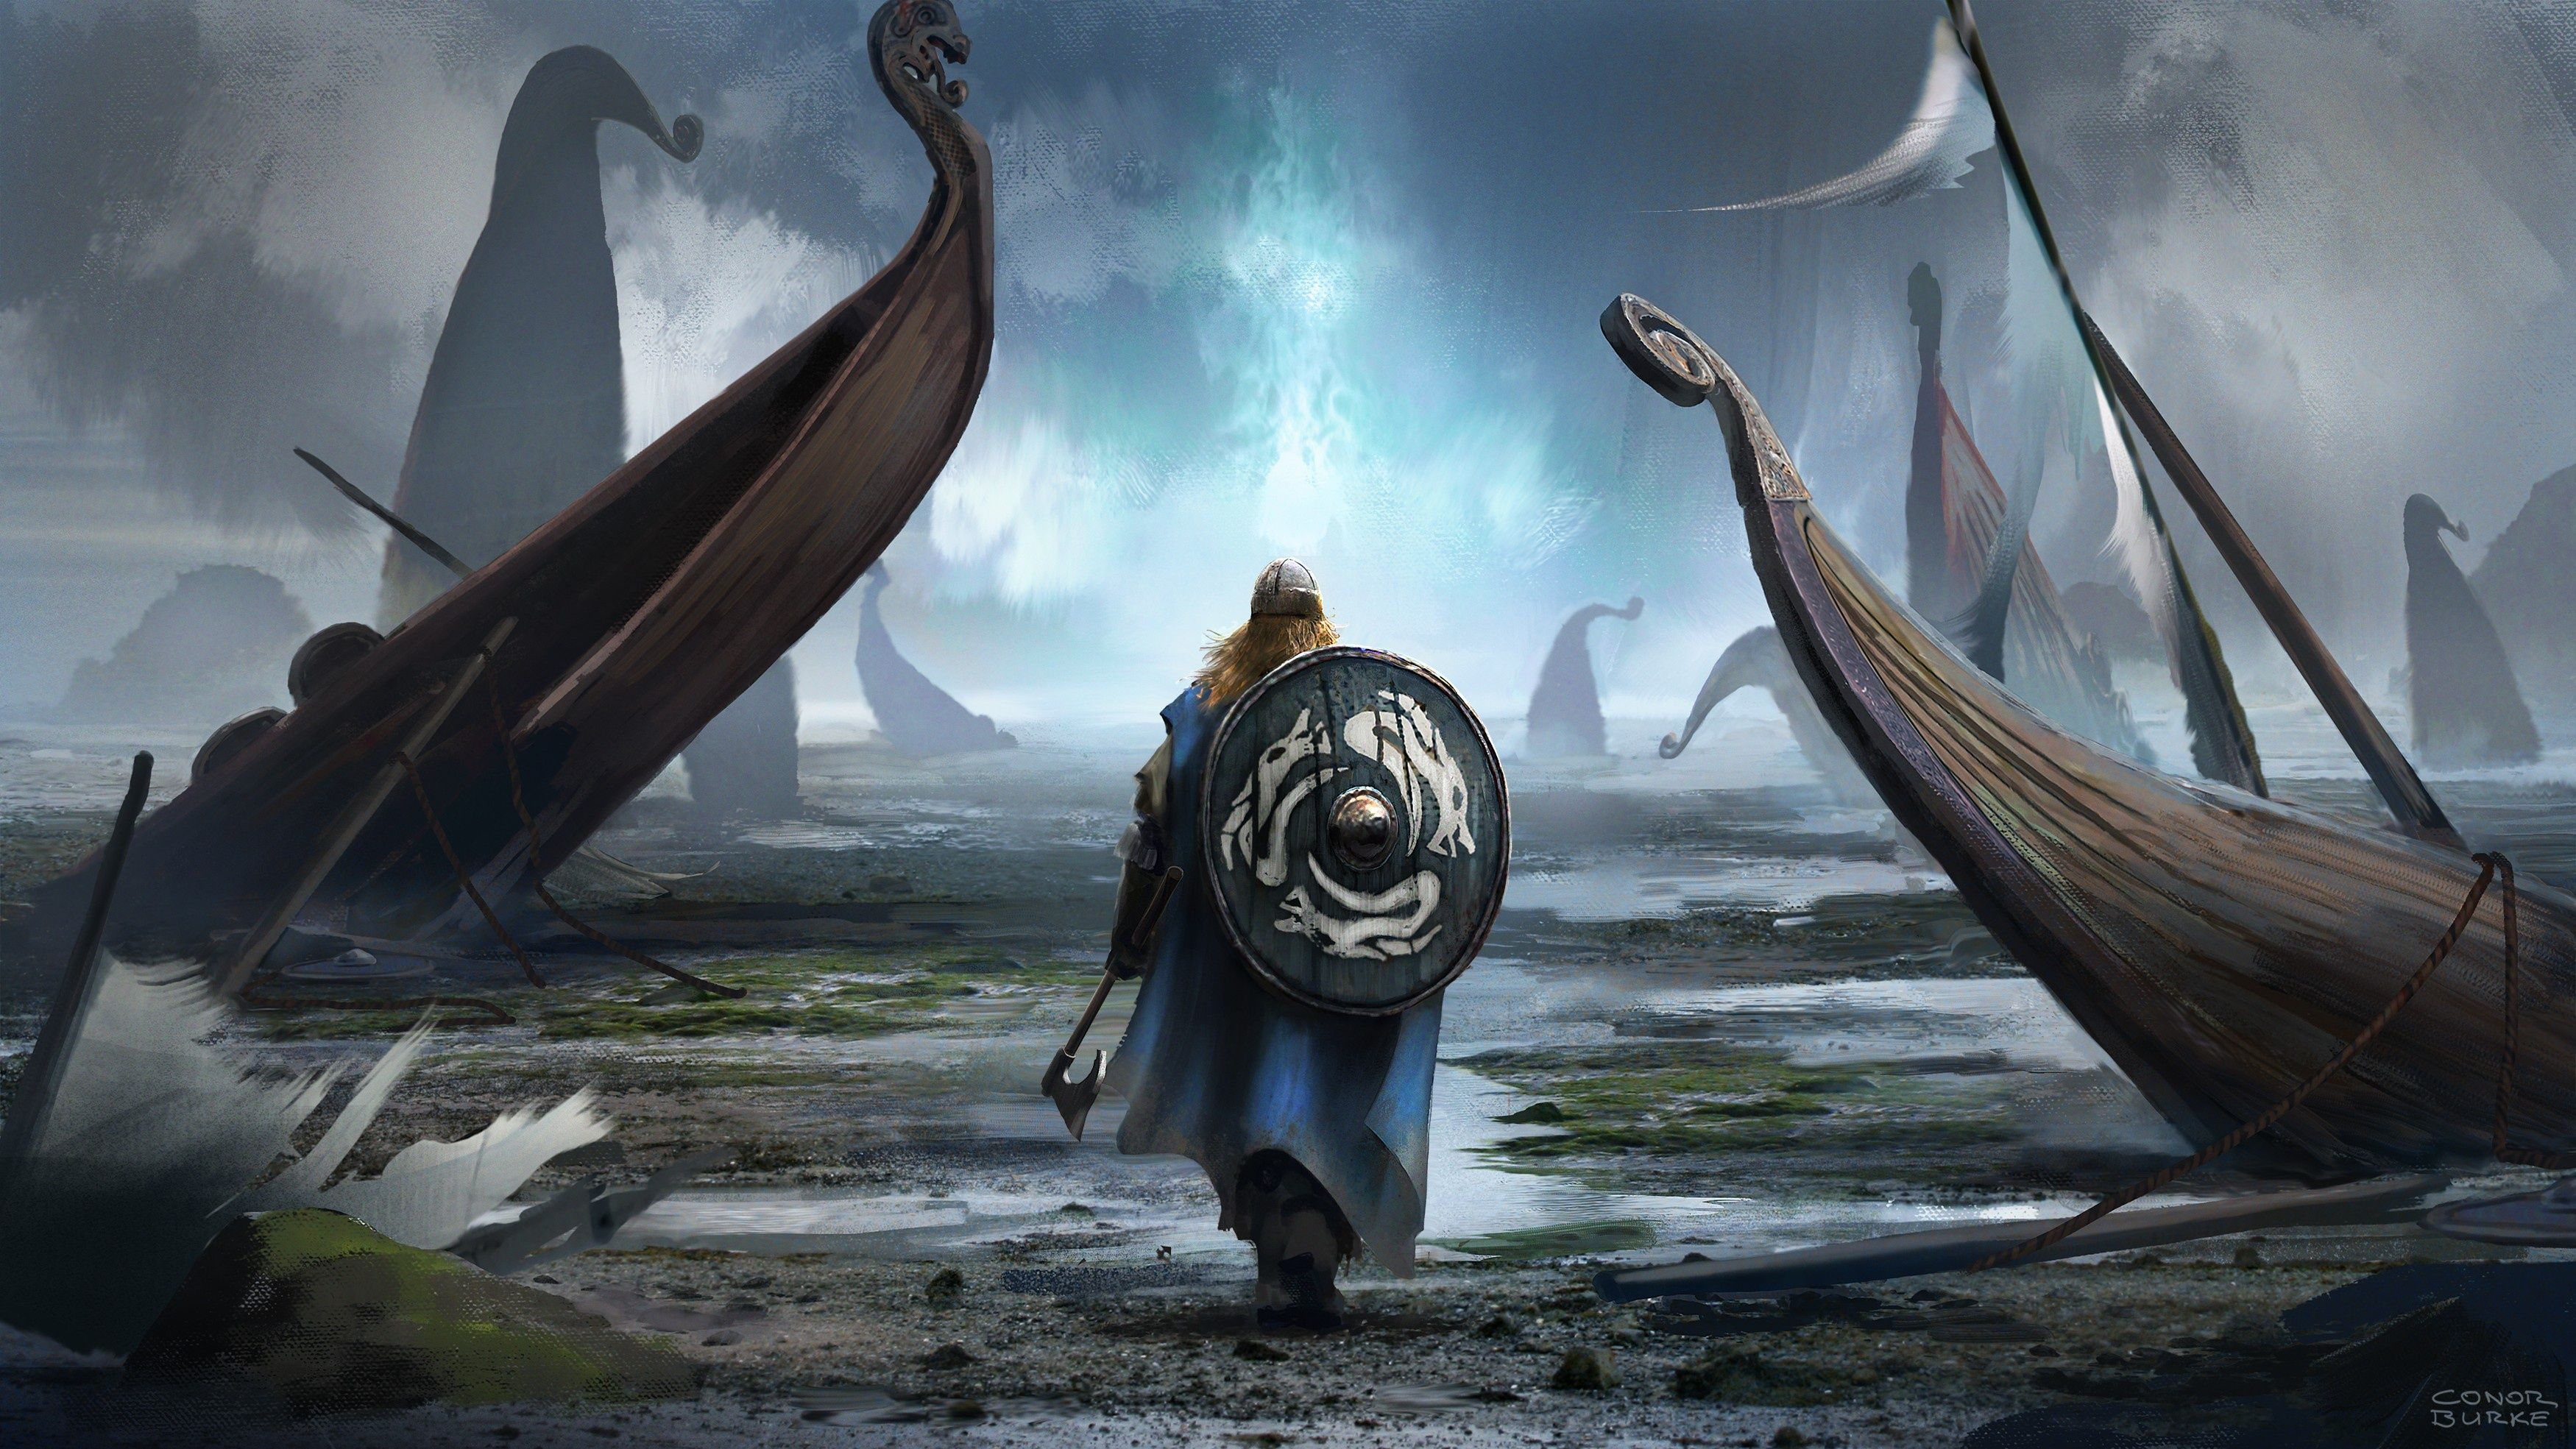 Viking Warrior Wallpapers   Top Viking Warrior Backgrounds 3500x1969